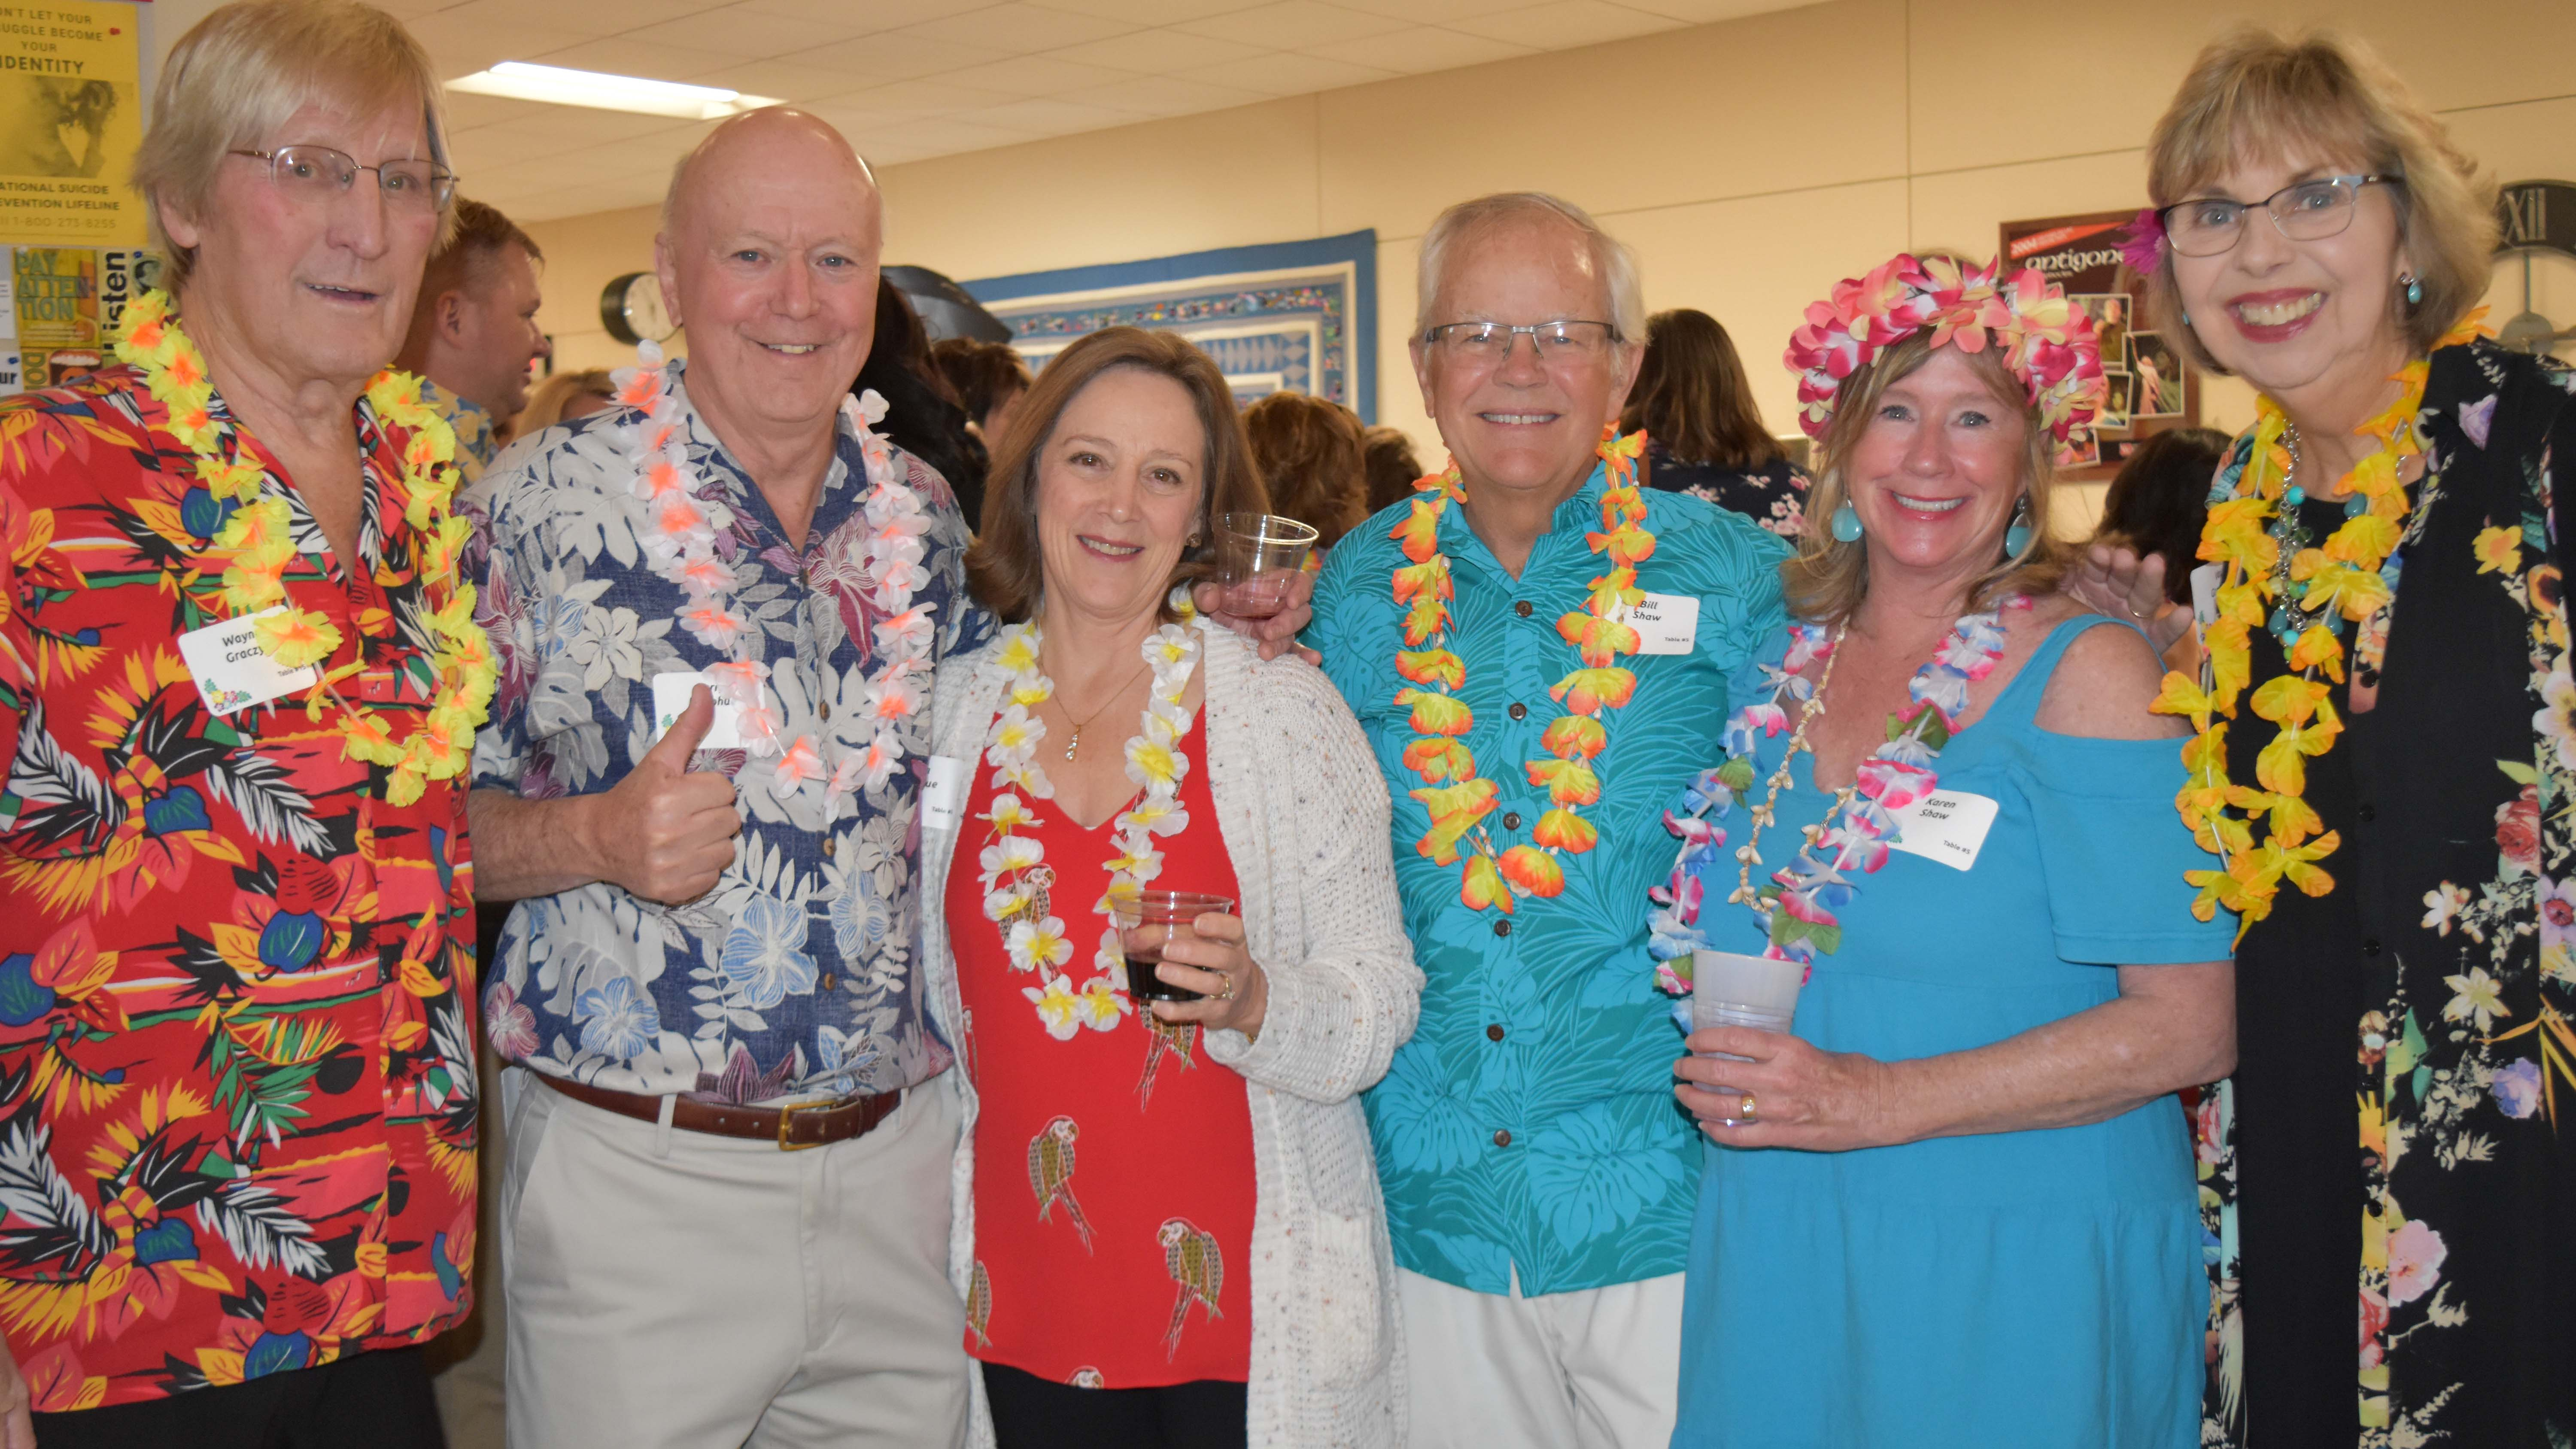 UW-Fond du Lac campus raises $34,000 for scholarship support at fundraiser